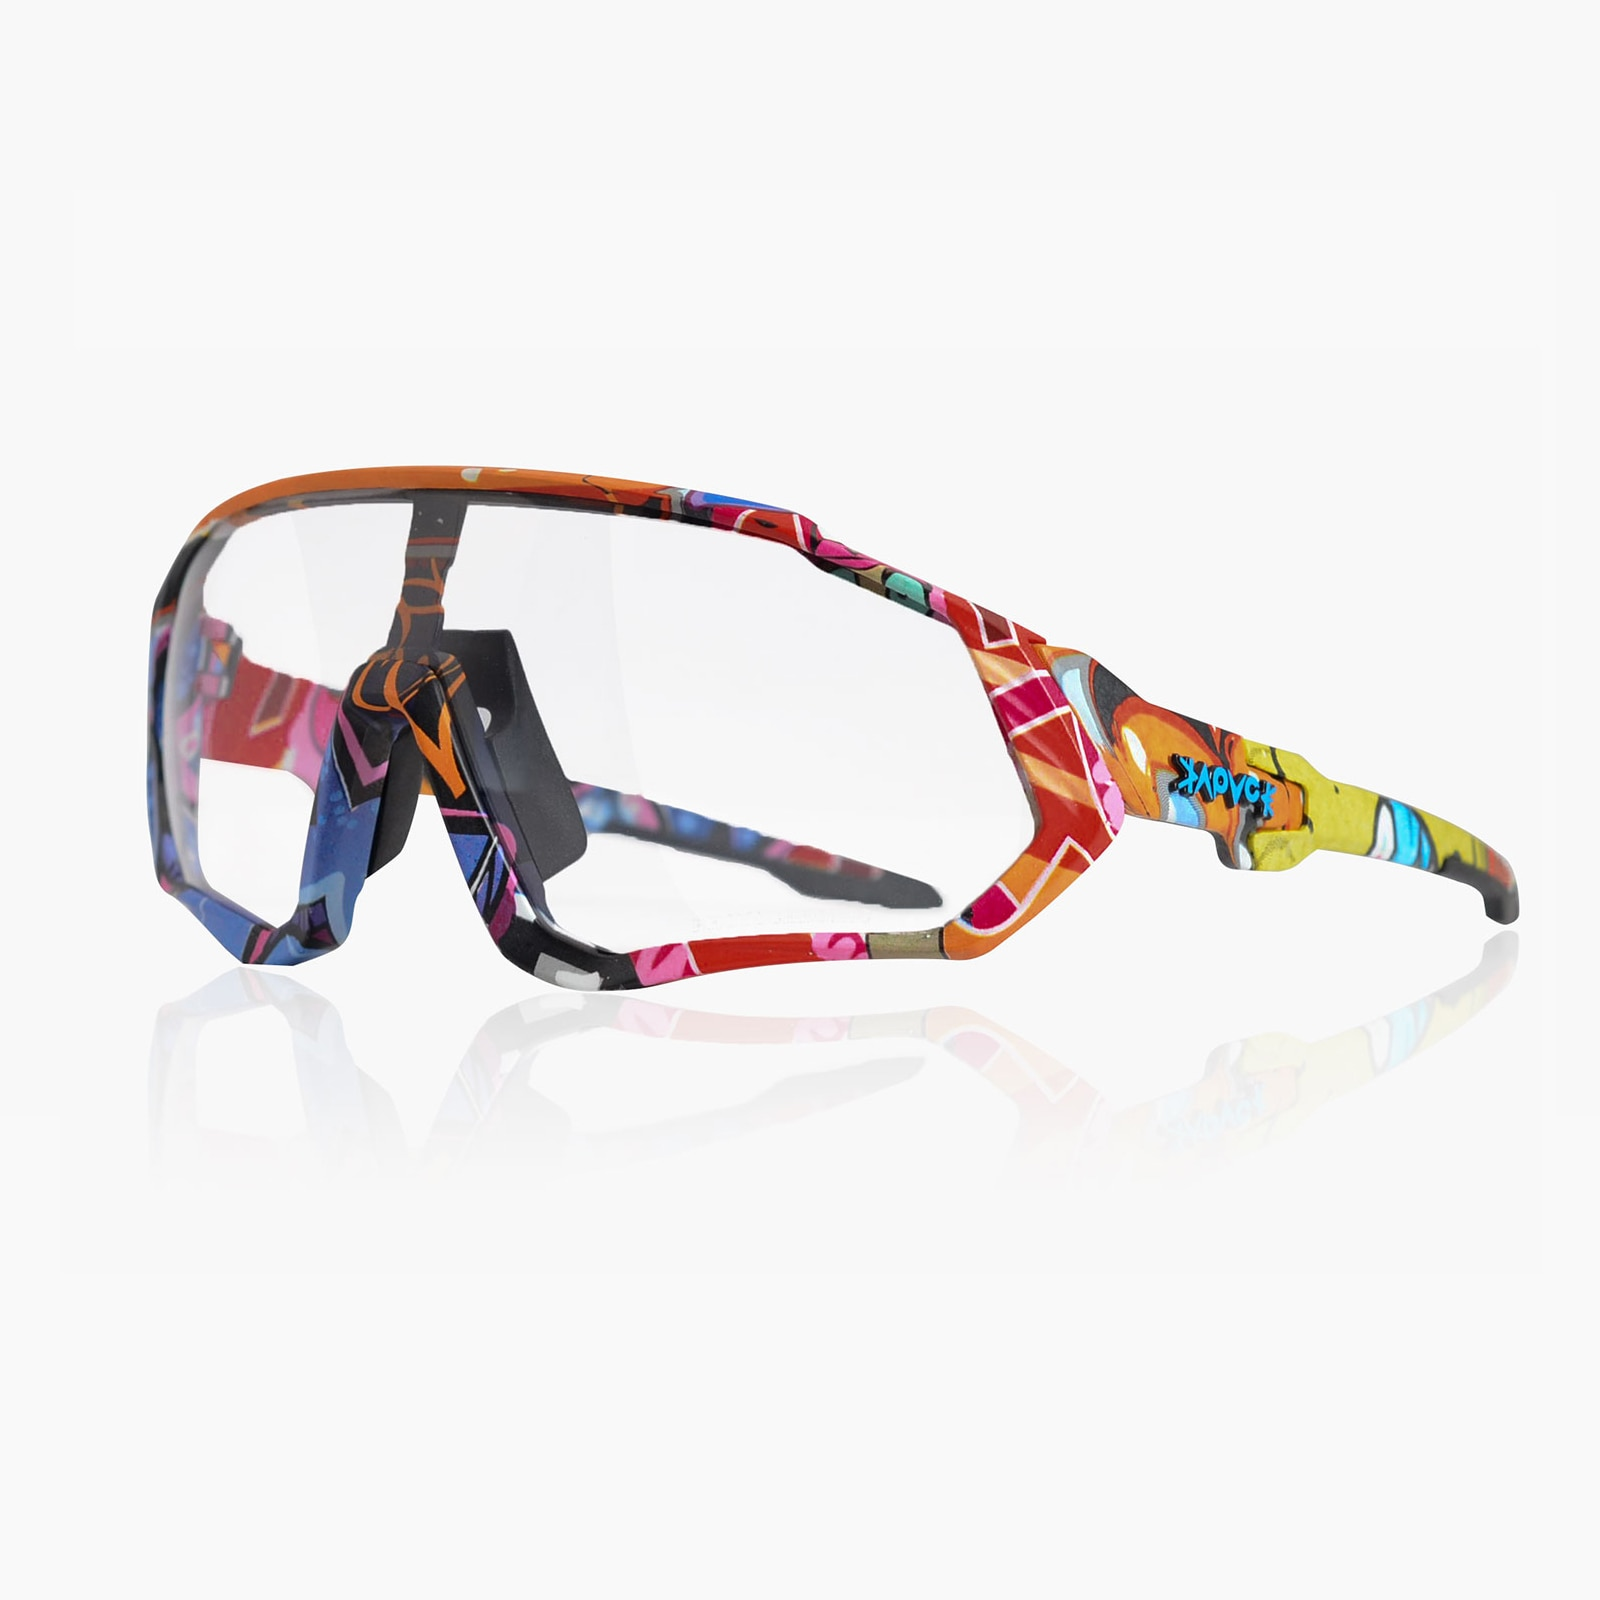 Discoloration Cycling Sunglasses Windproof Goggles Sports Mountain Bicycle Eyewear Lunette De Soleil Homme Cycling Equipment